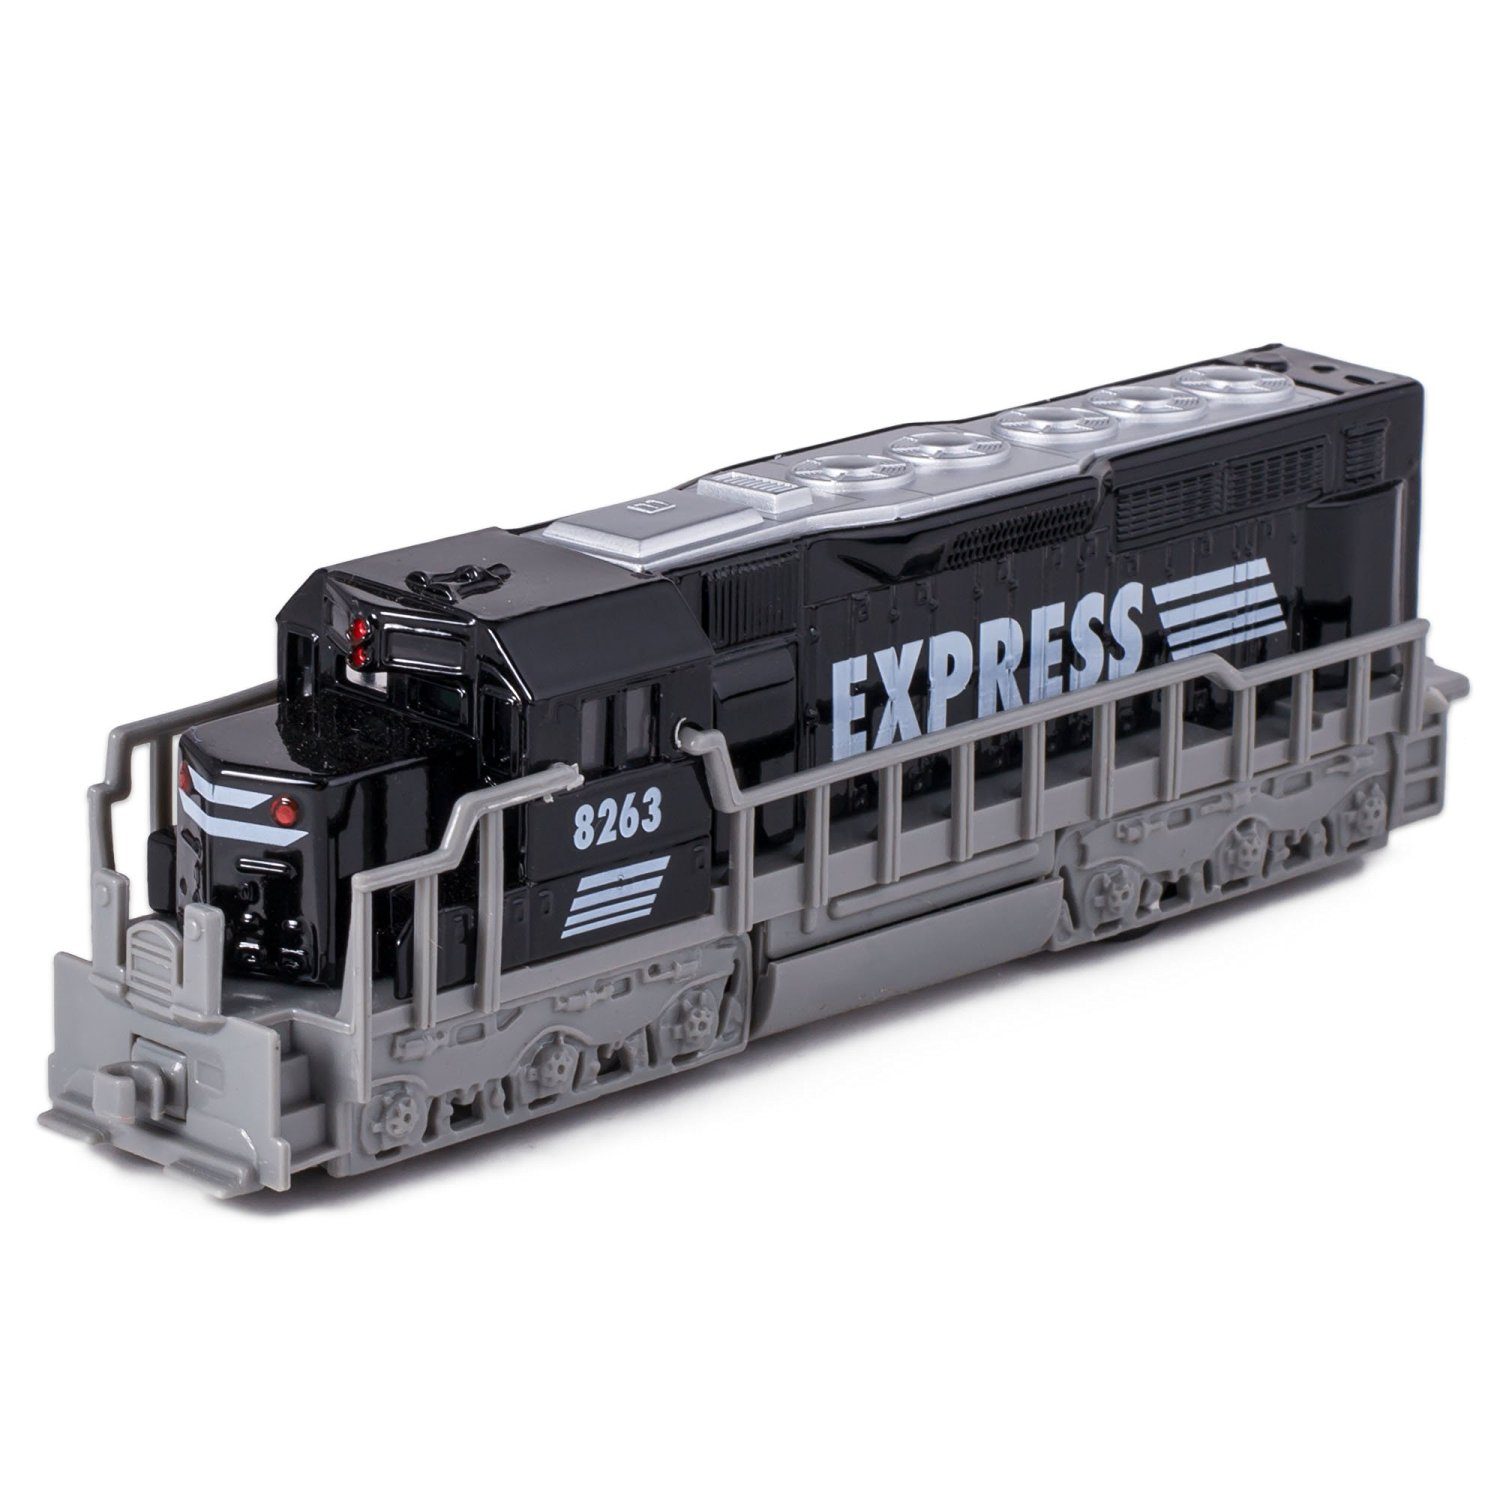 "7"" Black Die Cast Freight Train Locomotive Toy with Pull Back Action"